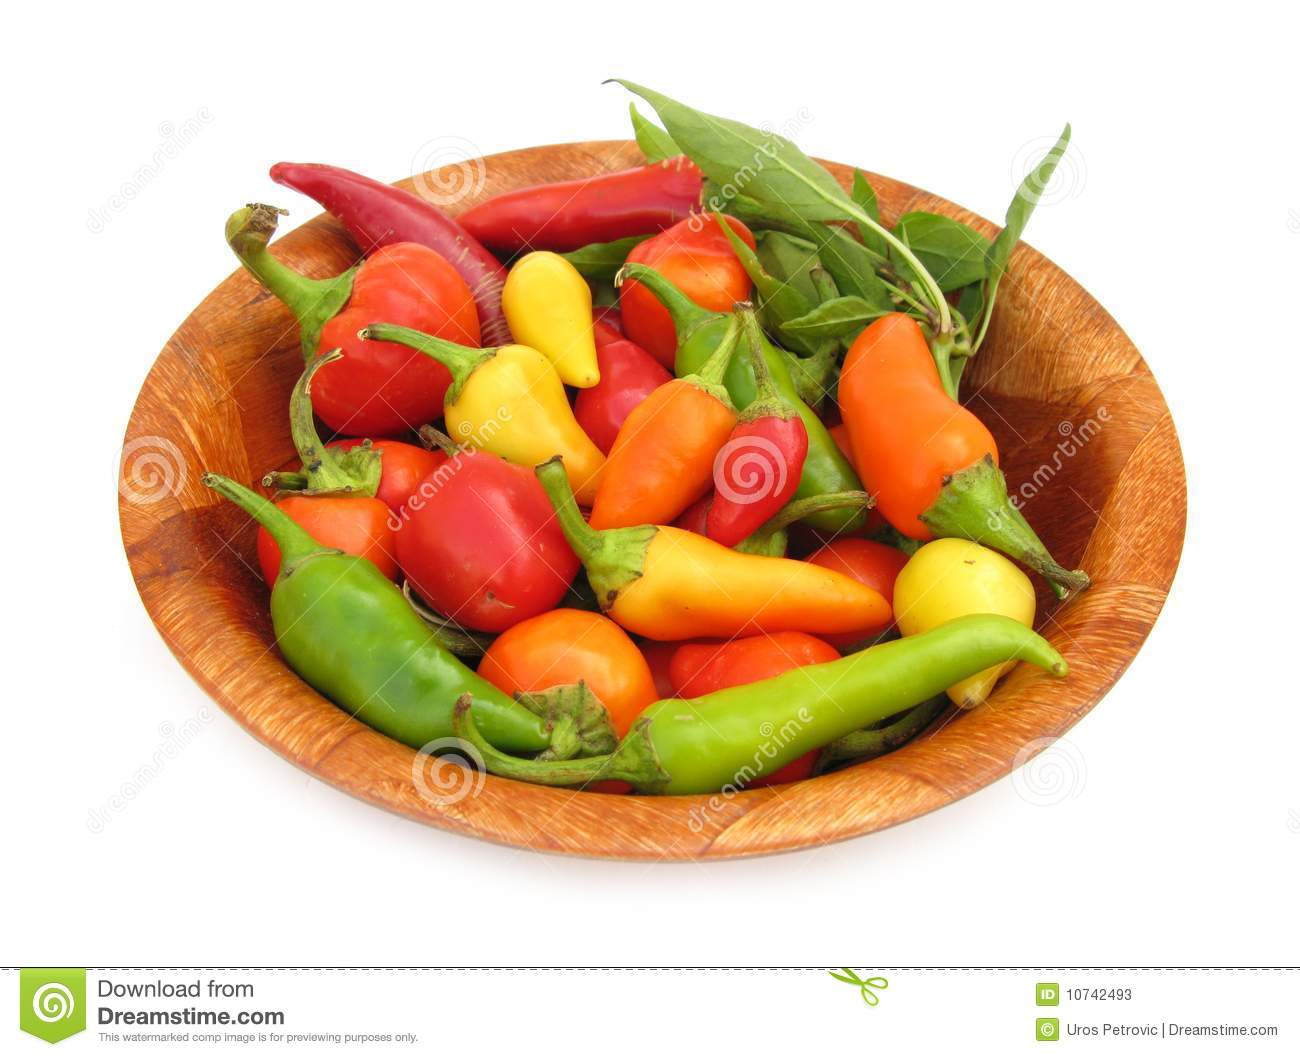 Chili peppers paprika in wooden dish